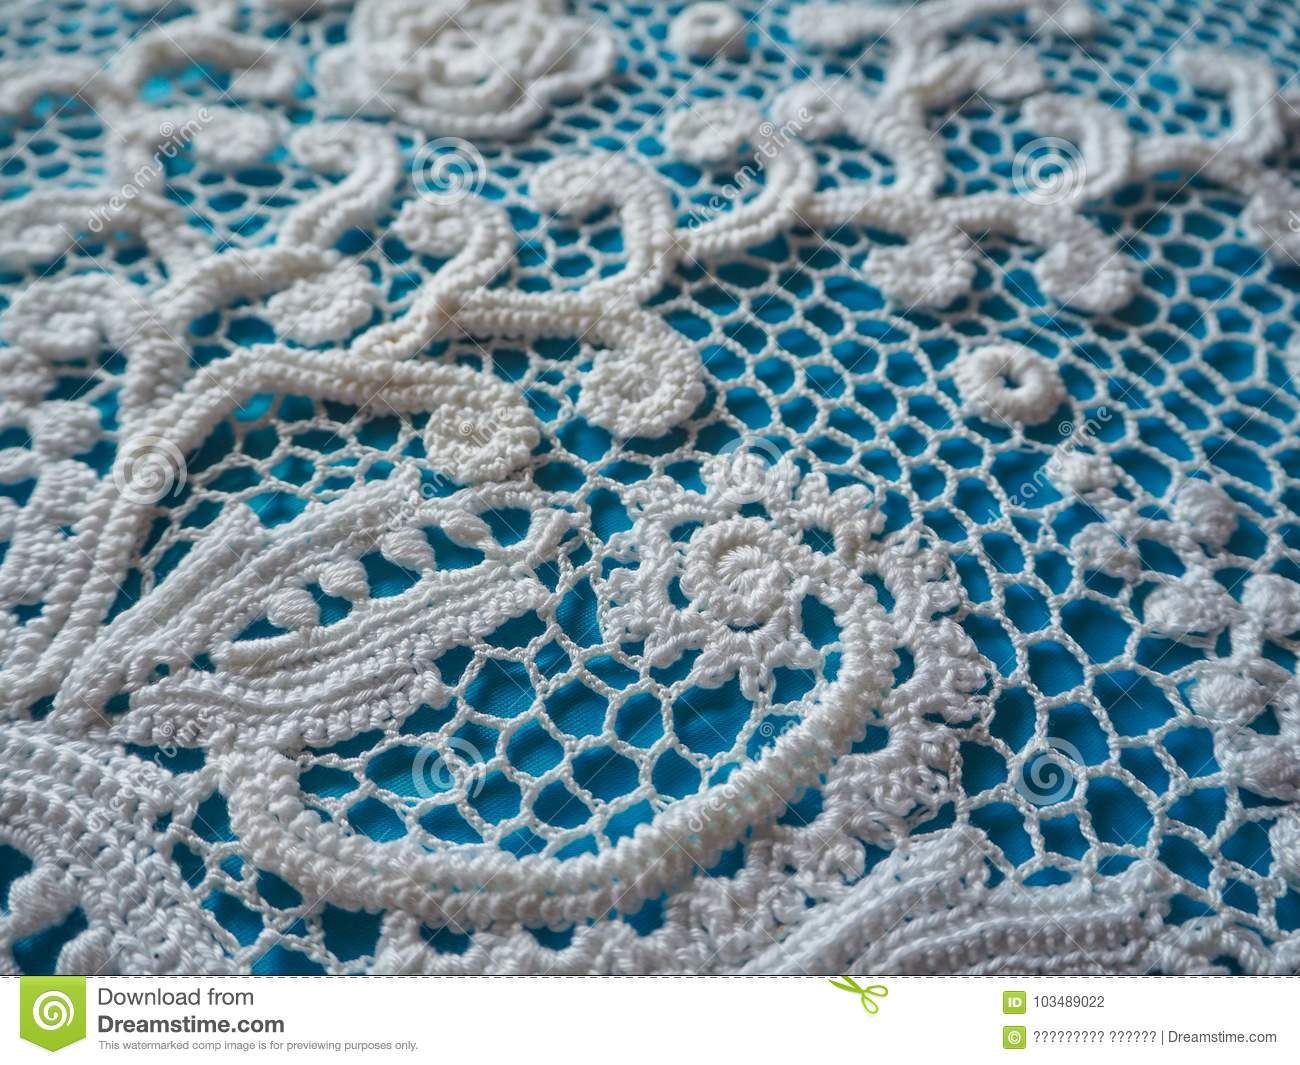 Irish Lace Crochet The Elements Of White Knitted Dress Stock Photo